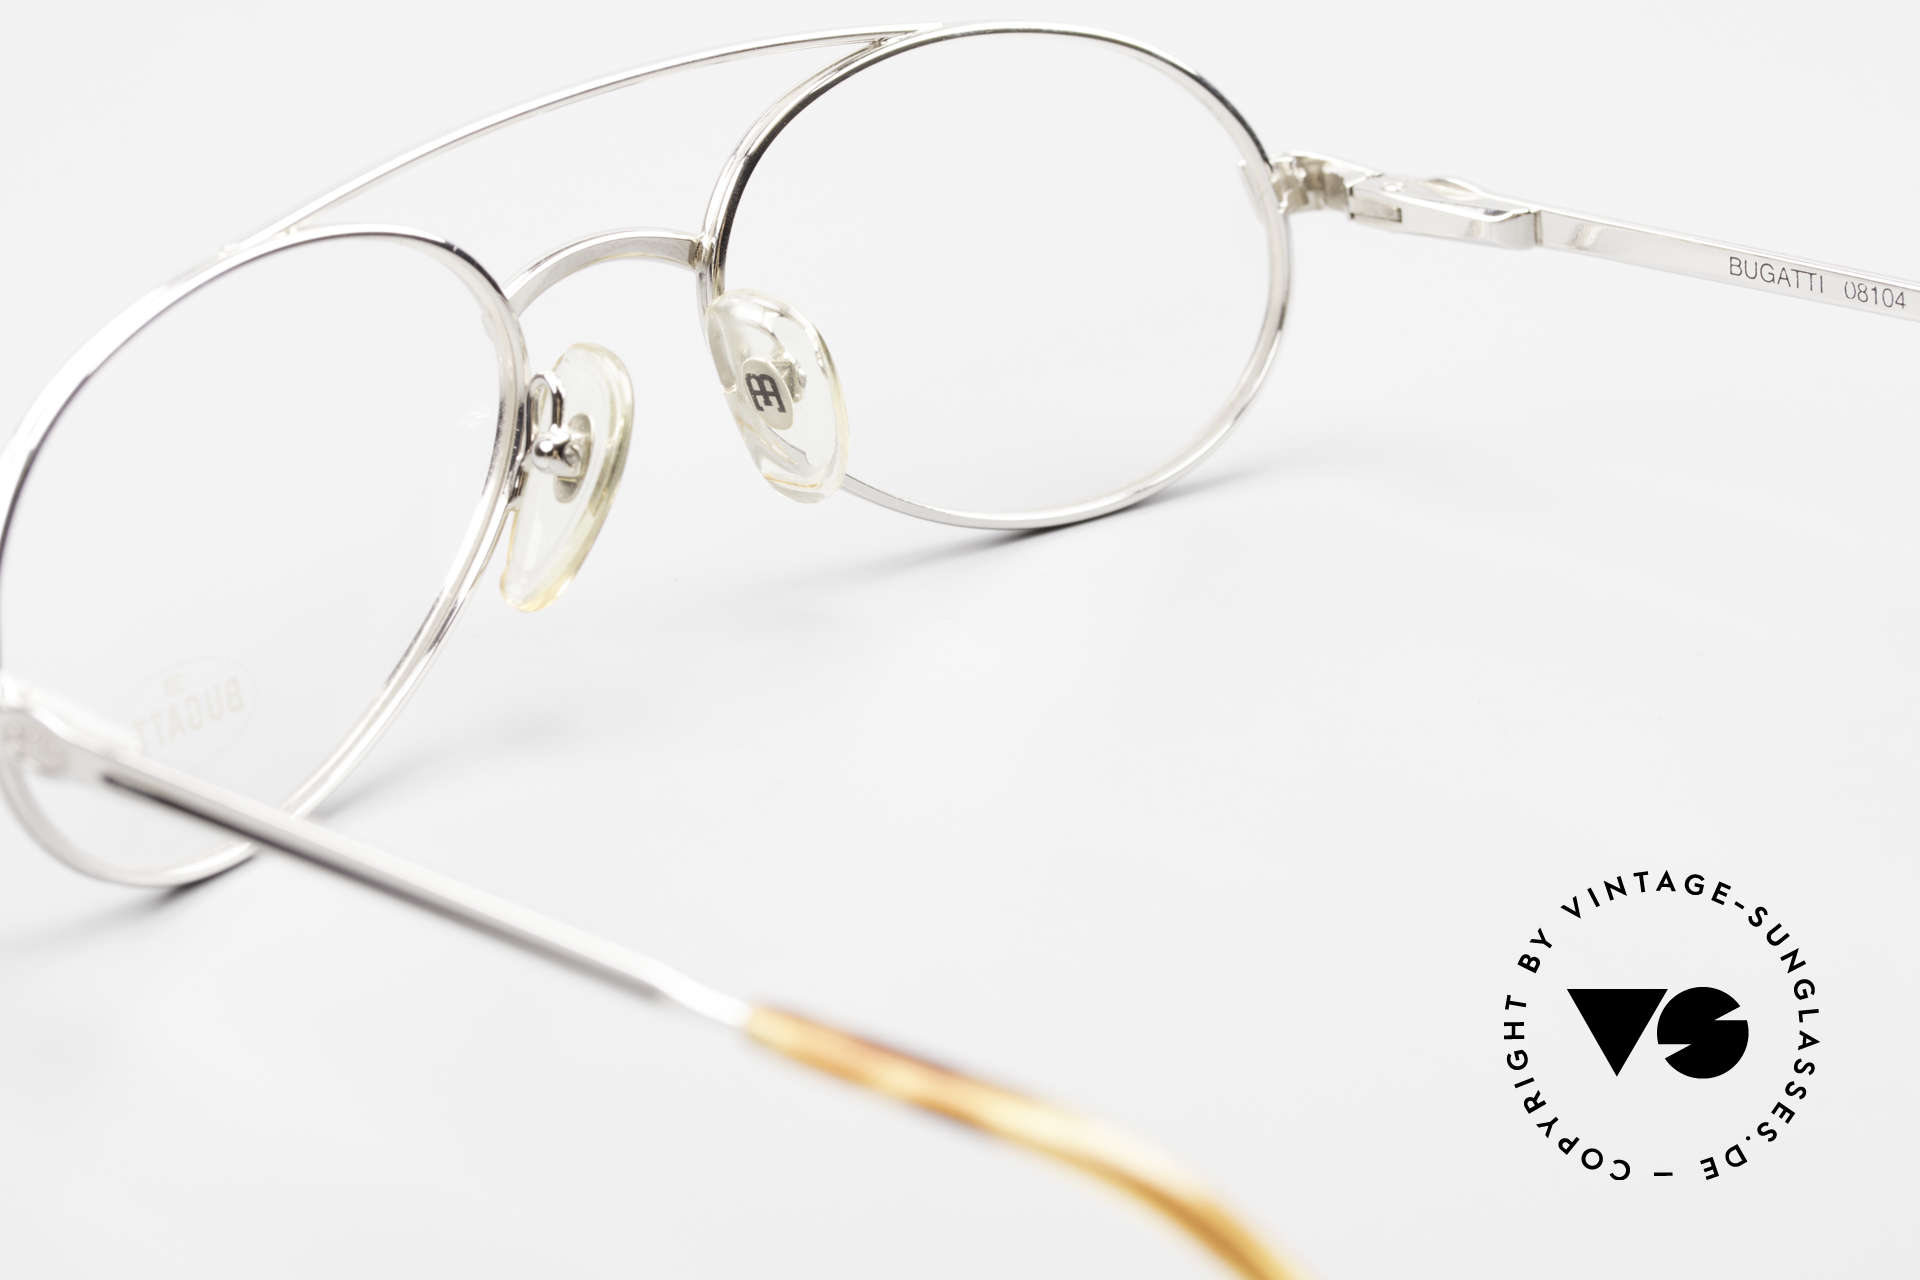 Bugatti 08104 Men's Vintage 80's Eyeglasses, DEMO lenses can be replaced with prescriptions, Made for Men